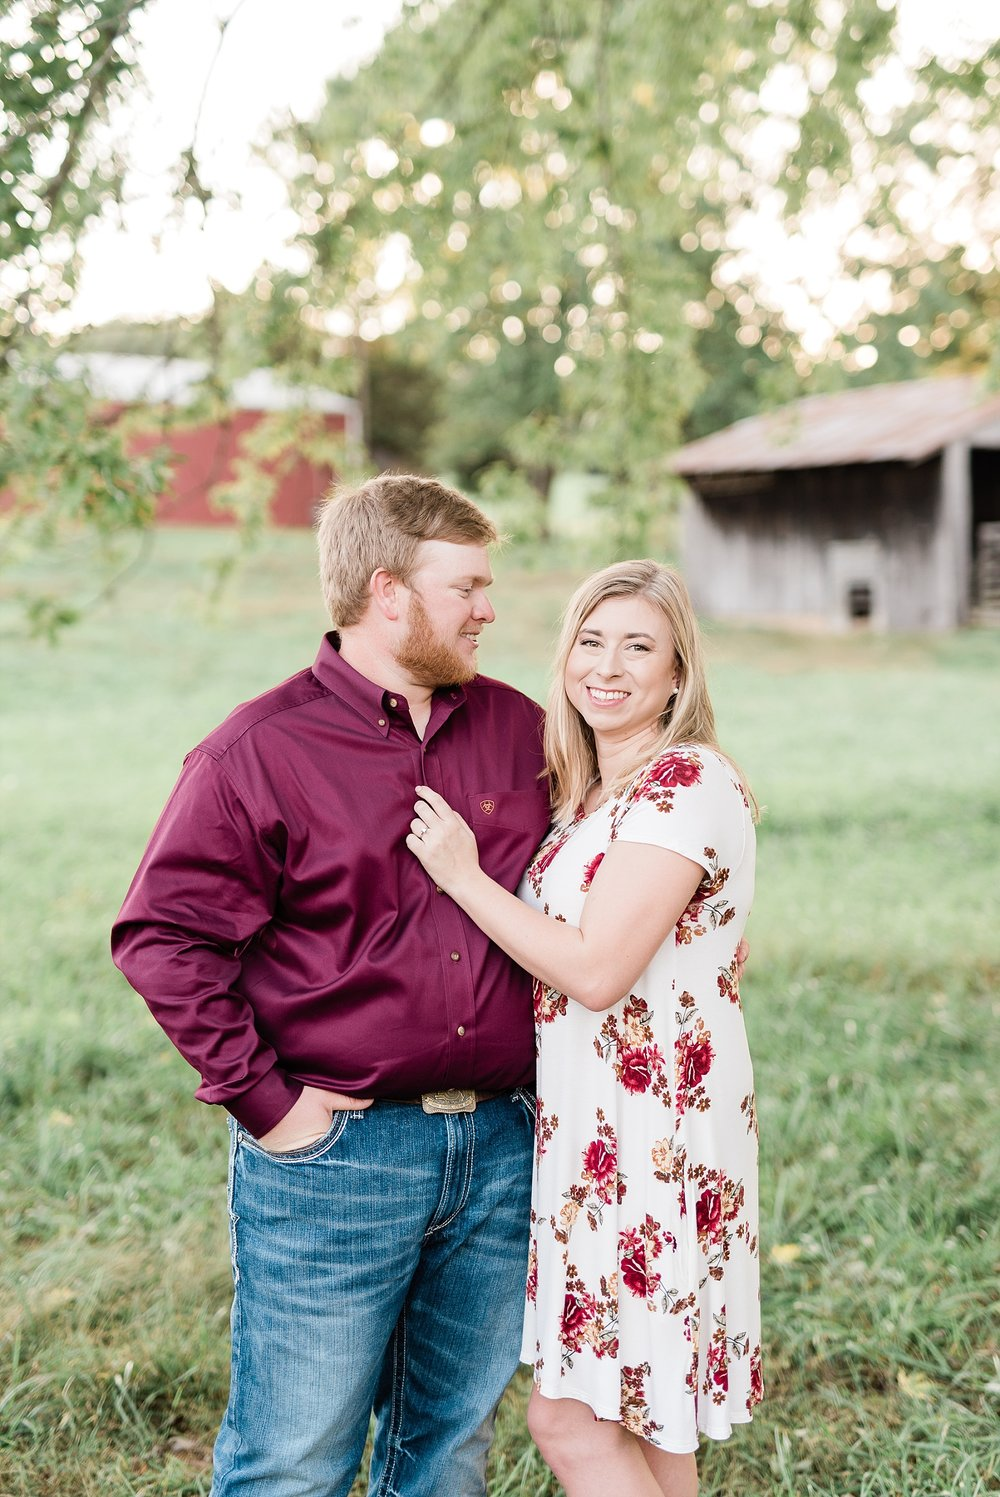 Autumn Golden Sunset Engagement Session on Farm in Missouri by Kelsi Kliethermes Photography_0005.jpg